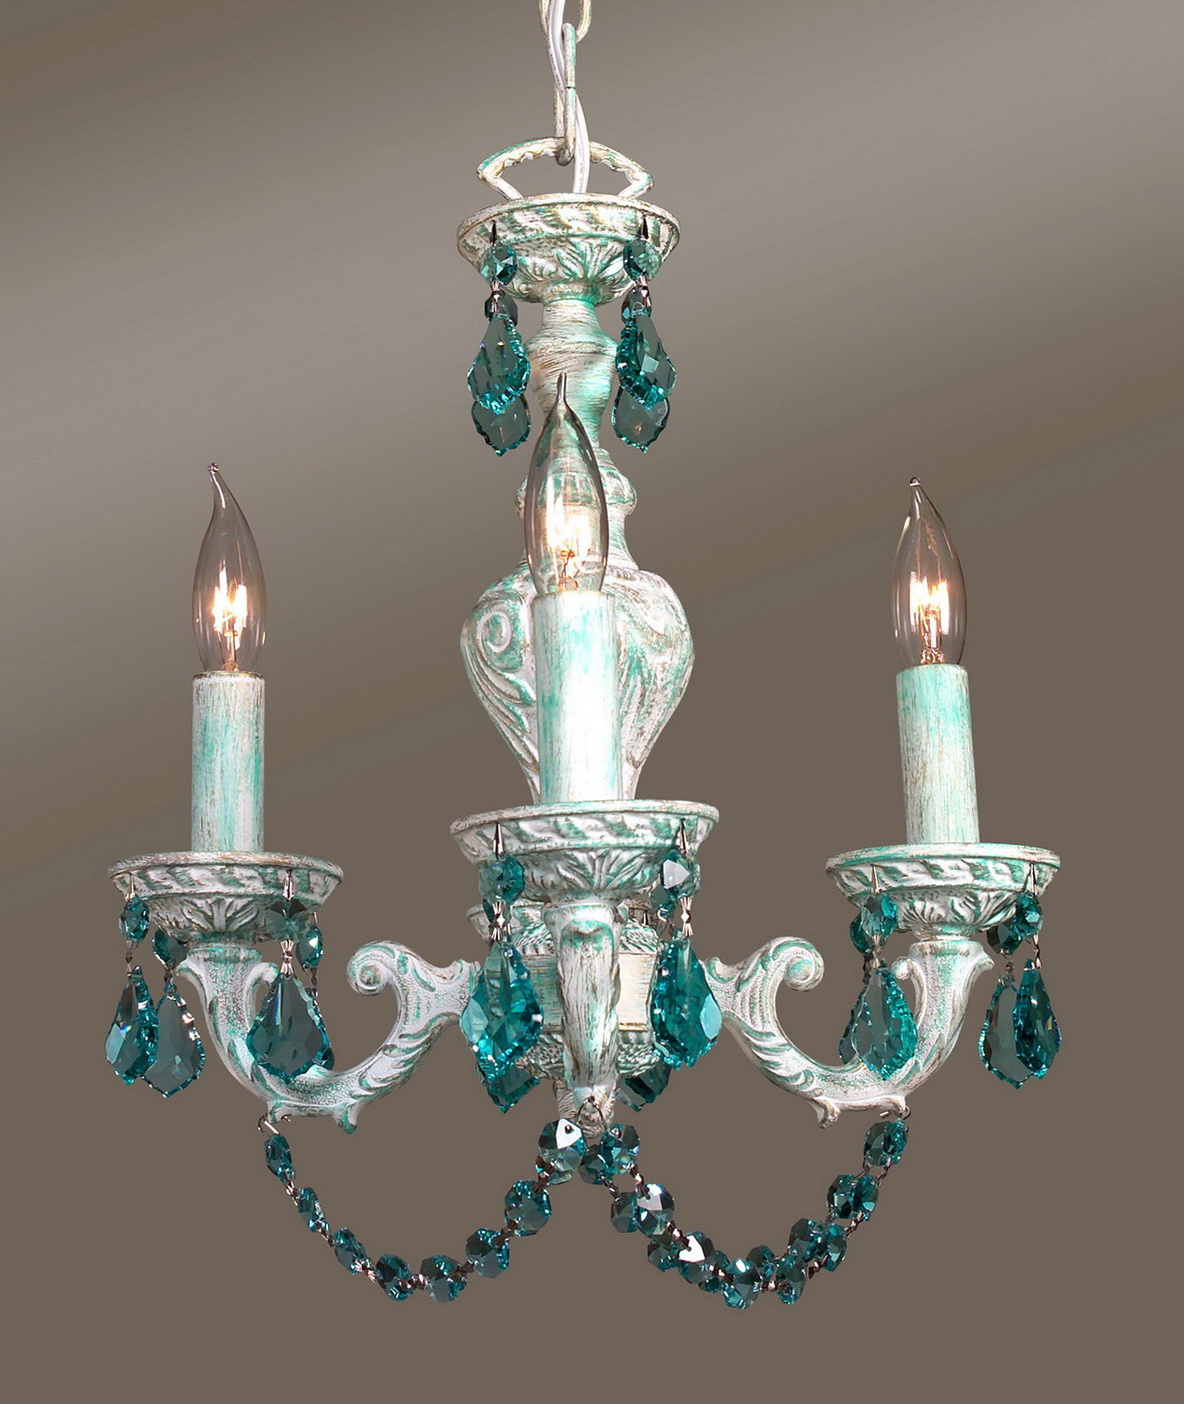 small chandelier for bedroom home design ideas. Black Bedroom Furniture Sets. Home Design Ideas